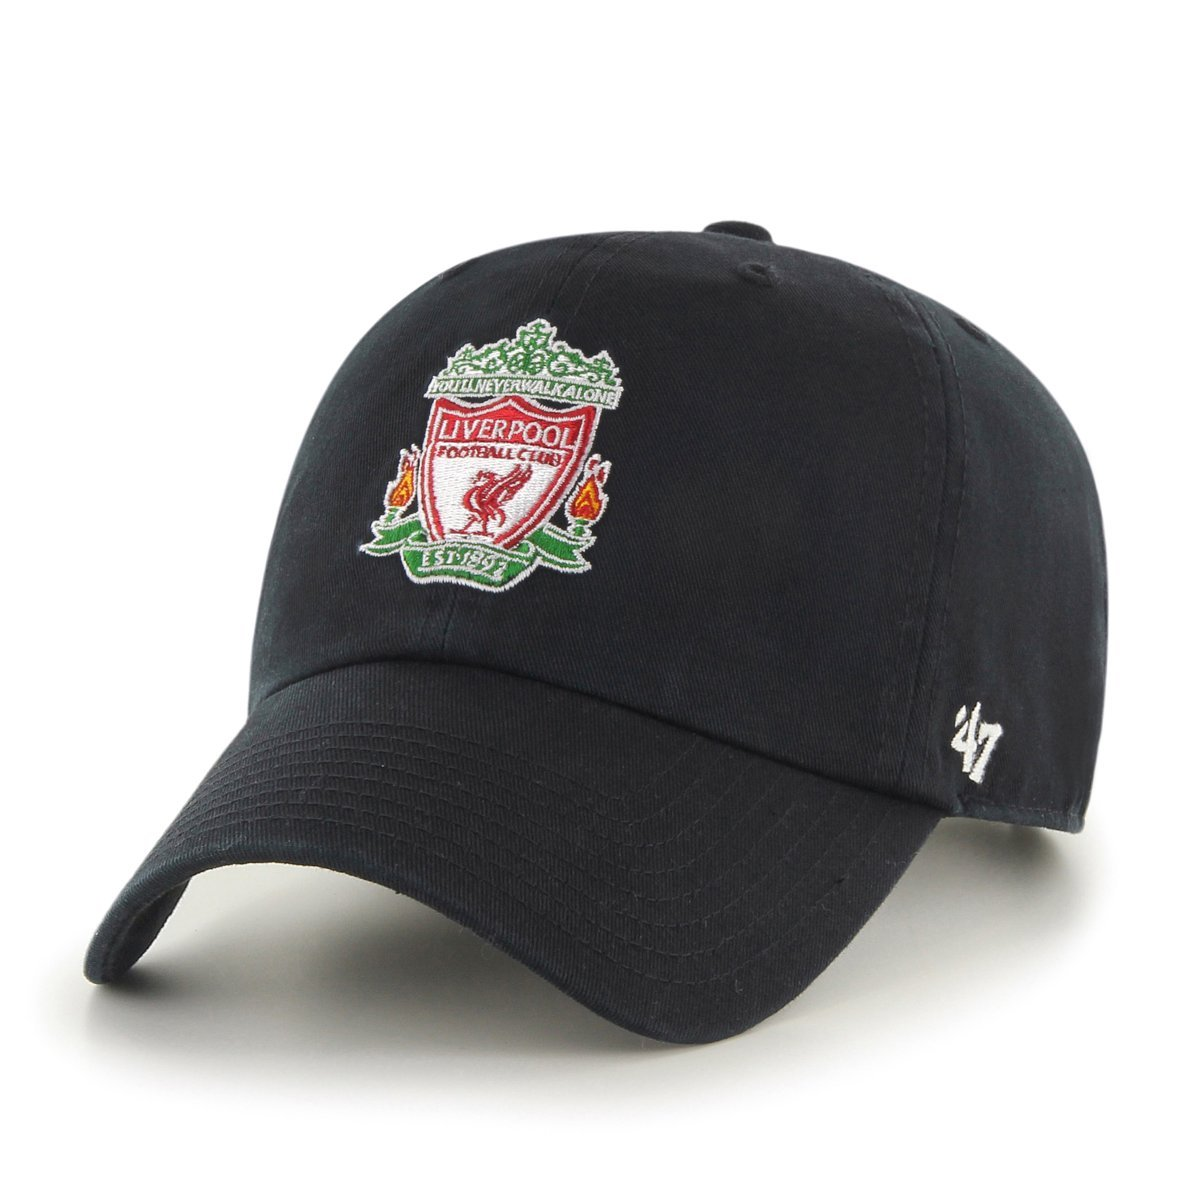 c8bf9aed73707 47 Brand EPL Liverpool FC Clean Up Cap - Black: Amazon.ca: Clothing ...